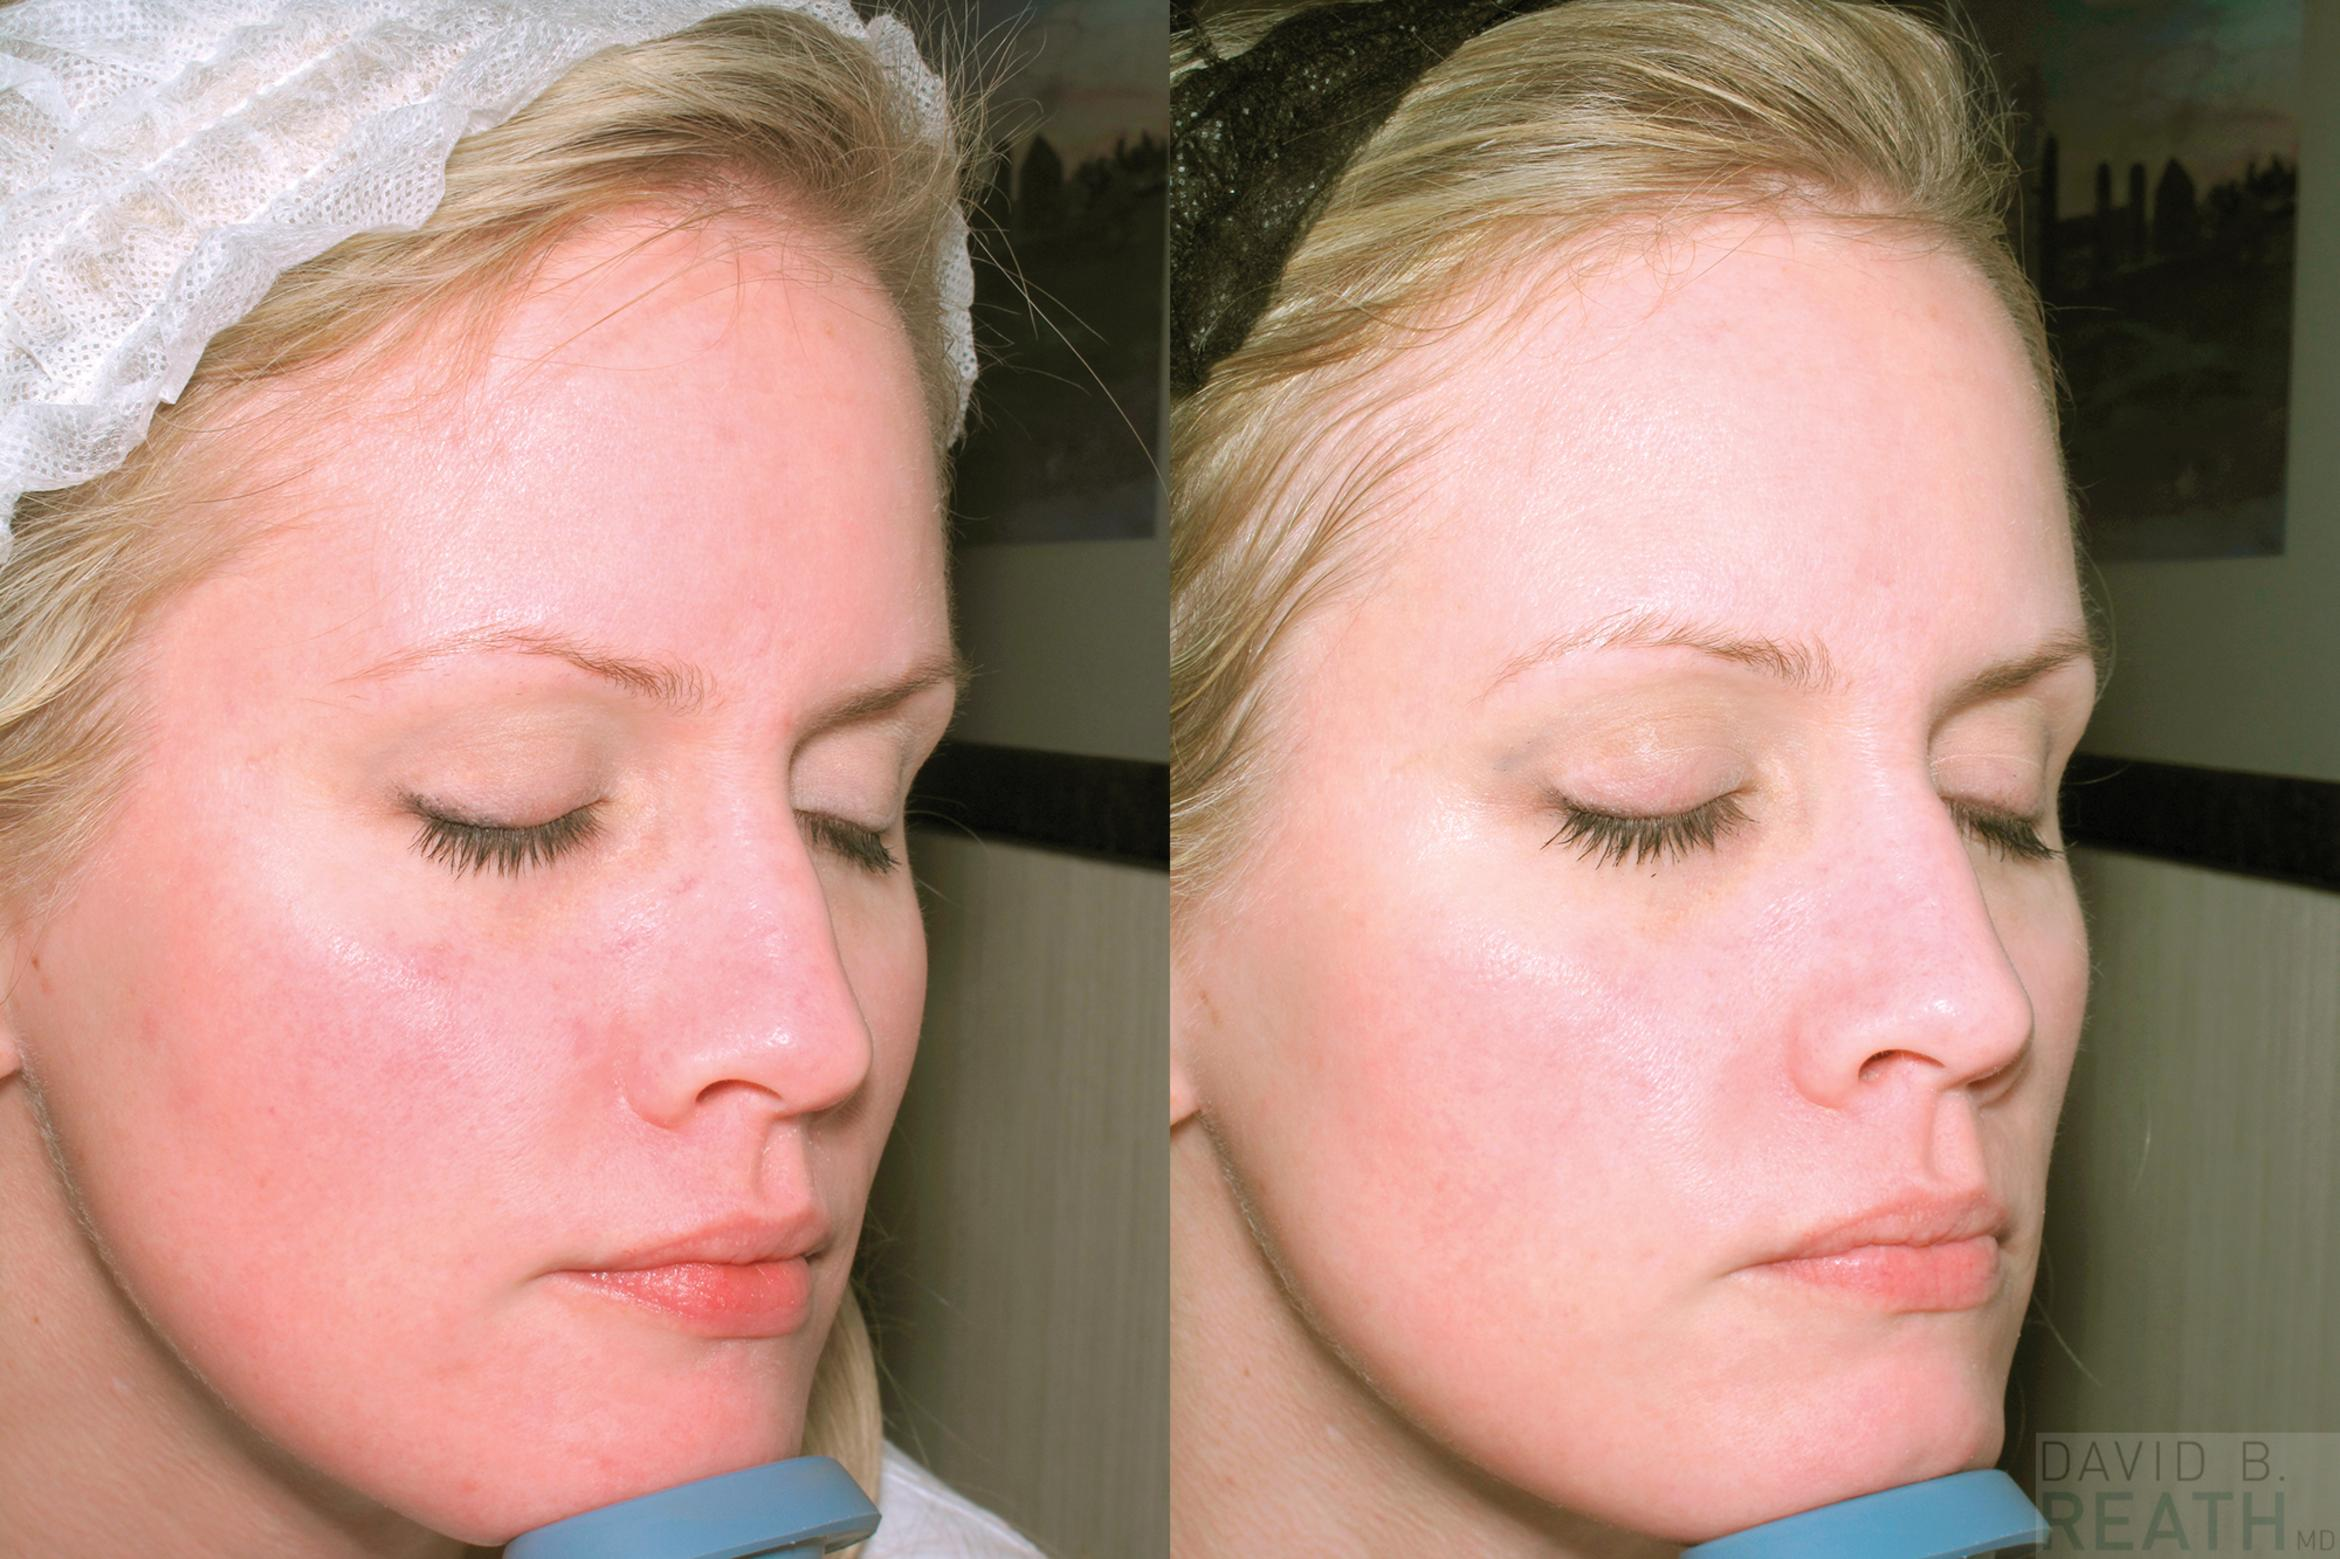 Laser Genesis Before & After Photo | Knoxville, Tennessee | David B. Reath, MD